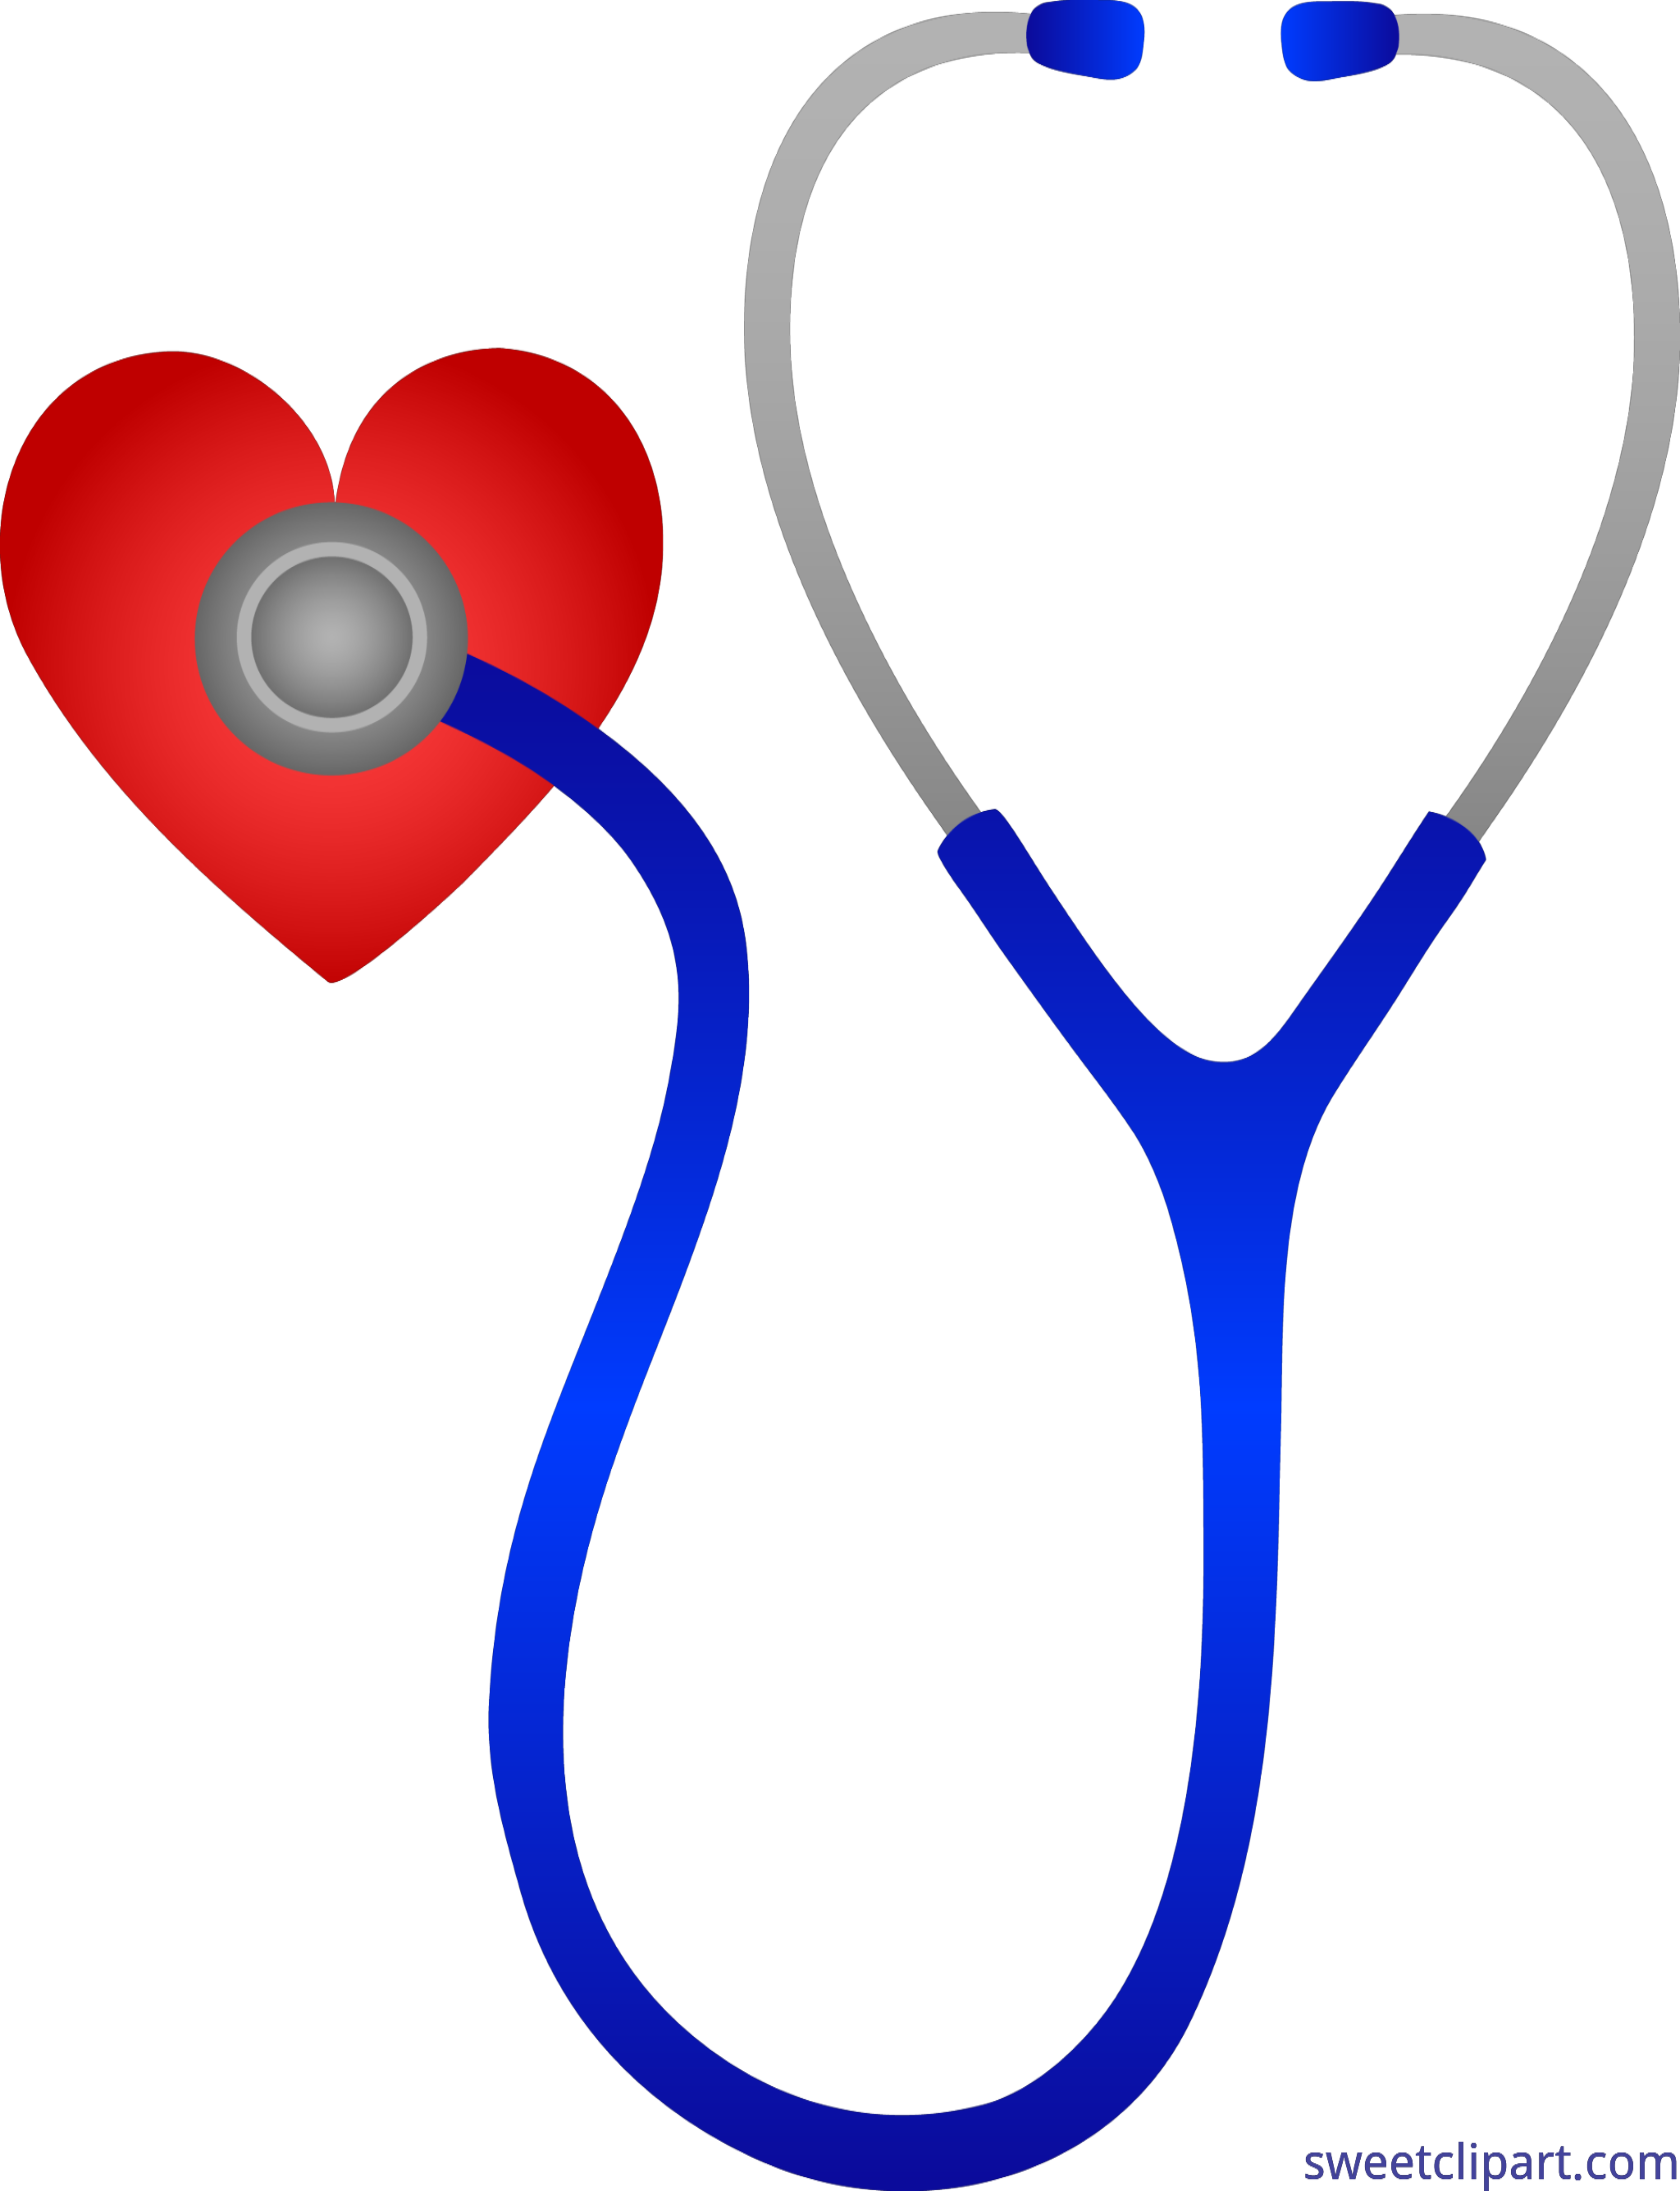 Heartbeat clipart doctor. Doctors stethoscope with heart